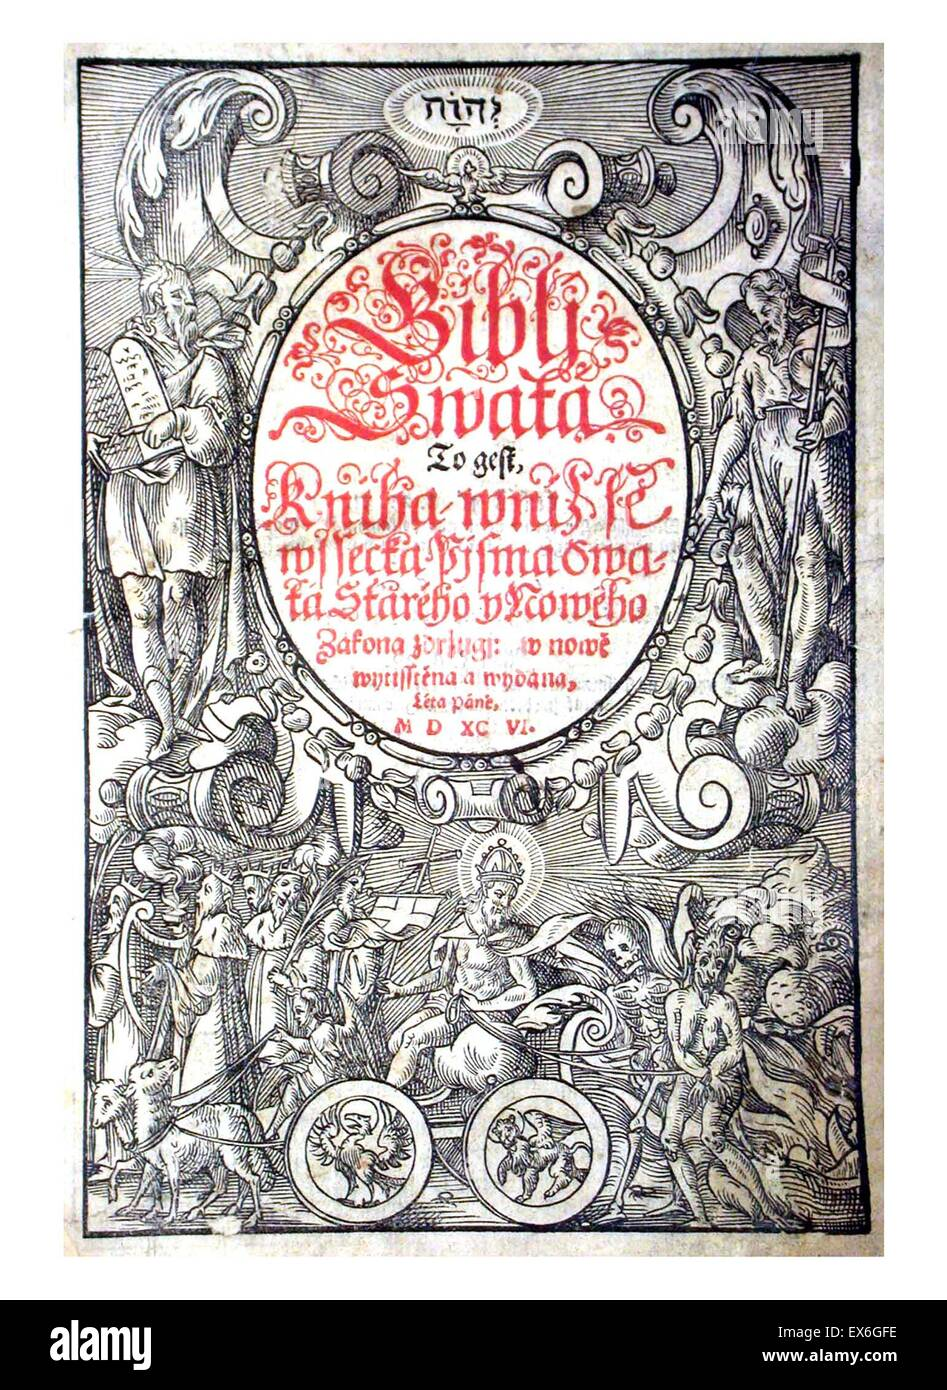 The Kralitz Bohemian Bible. Published by Protestant Unitas Fratrum. Dated 16th Century - Stock Image